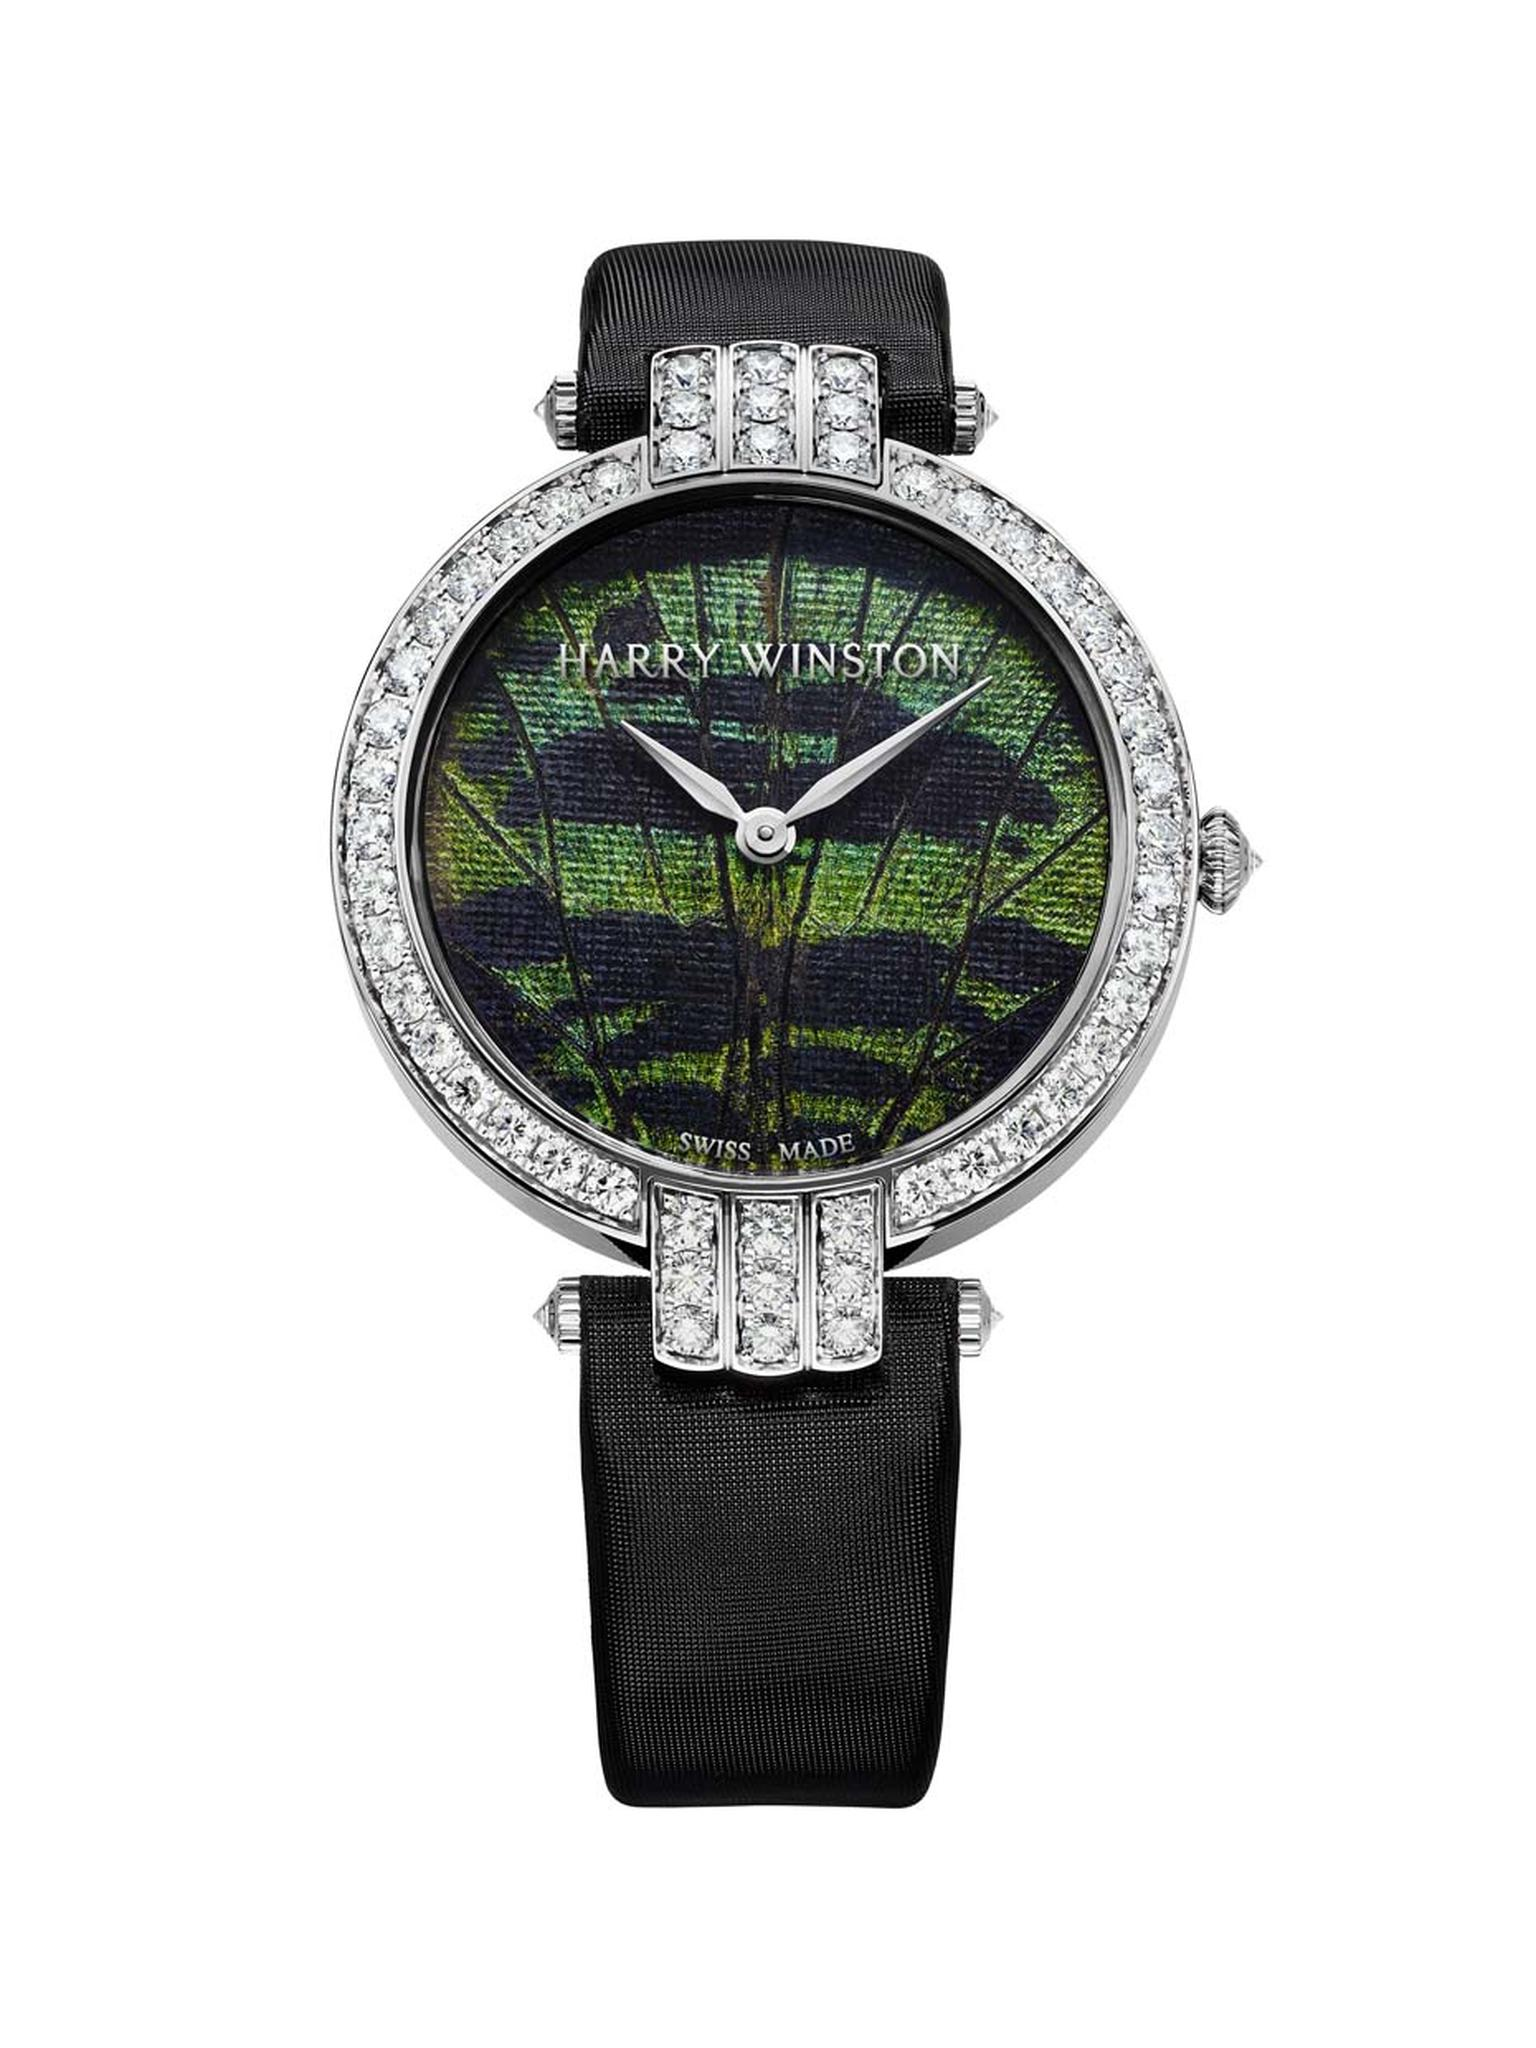 This model of the Harry Winston Premier Precious Butterfly ladies' watch comes in a 36mm white gold case with a flurry of 57 brilliant-cut diamonds set on the bezel and lugs. The iridescent dial is crafted using powder harvested from different species of